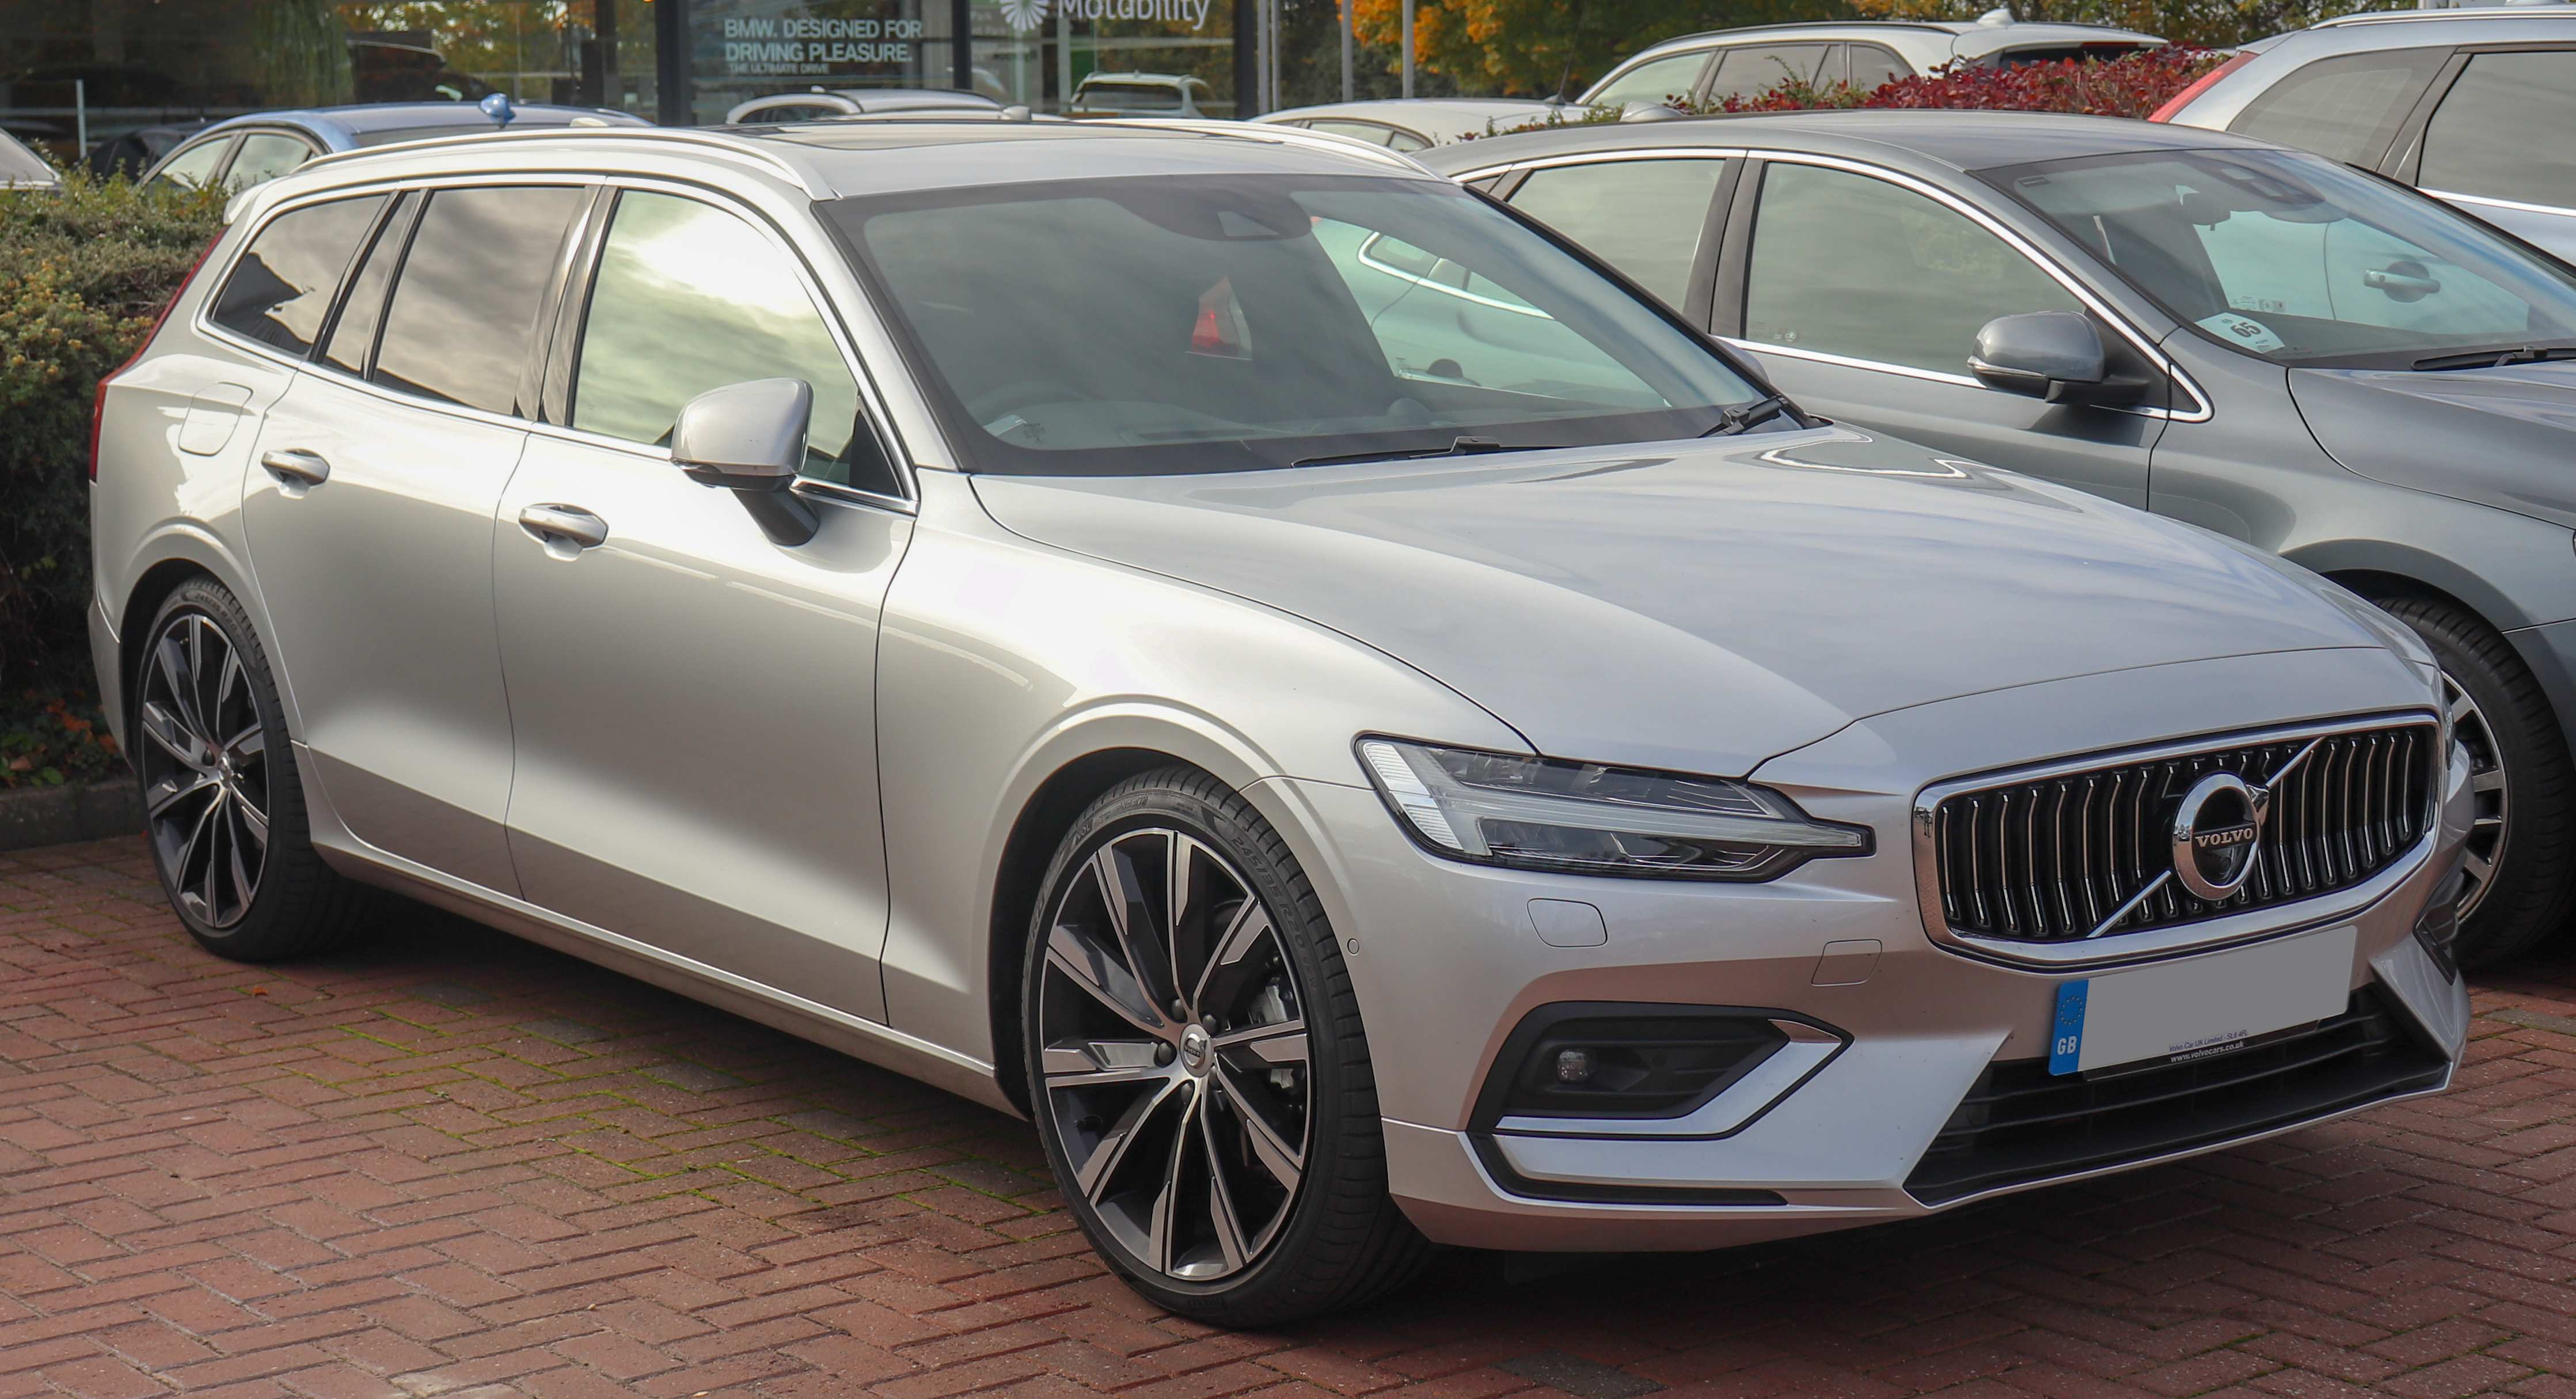 57 The Best Volvo Nel 2019 Price And Release Date